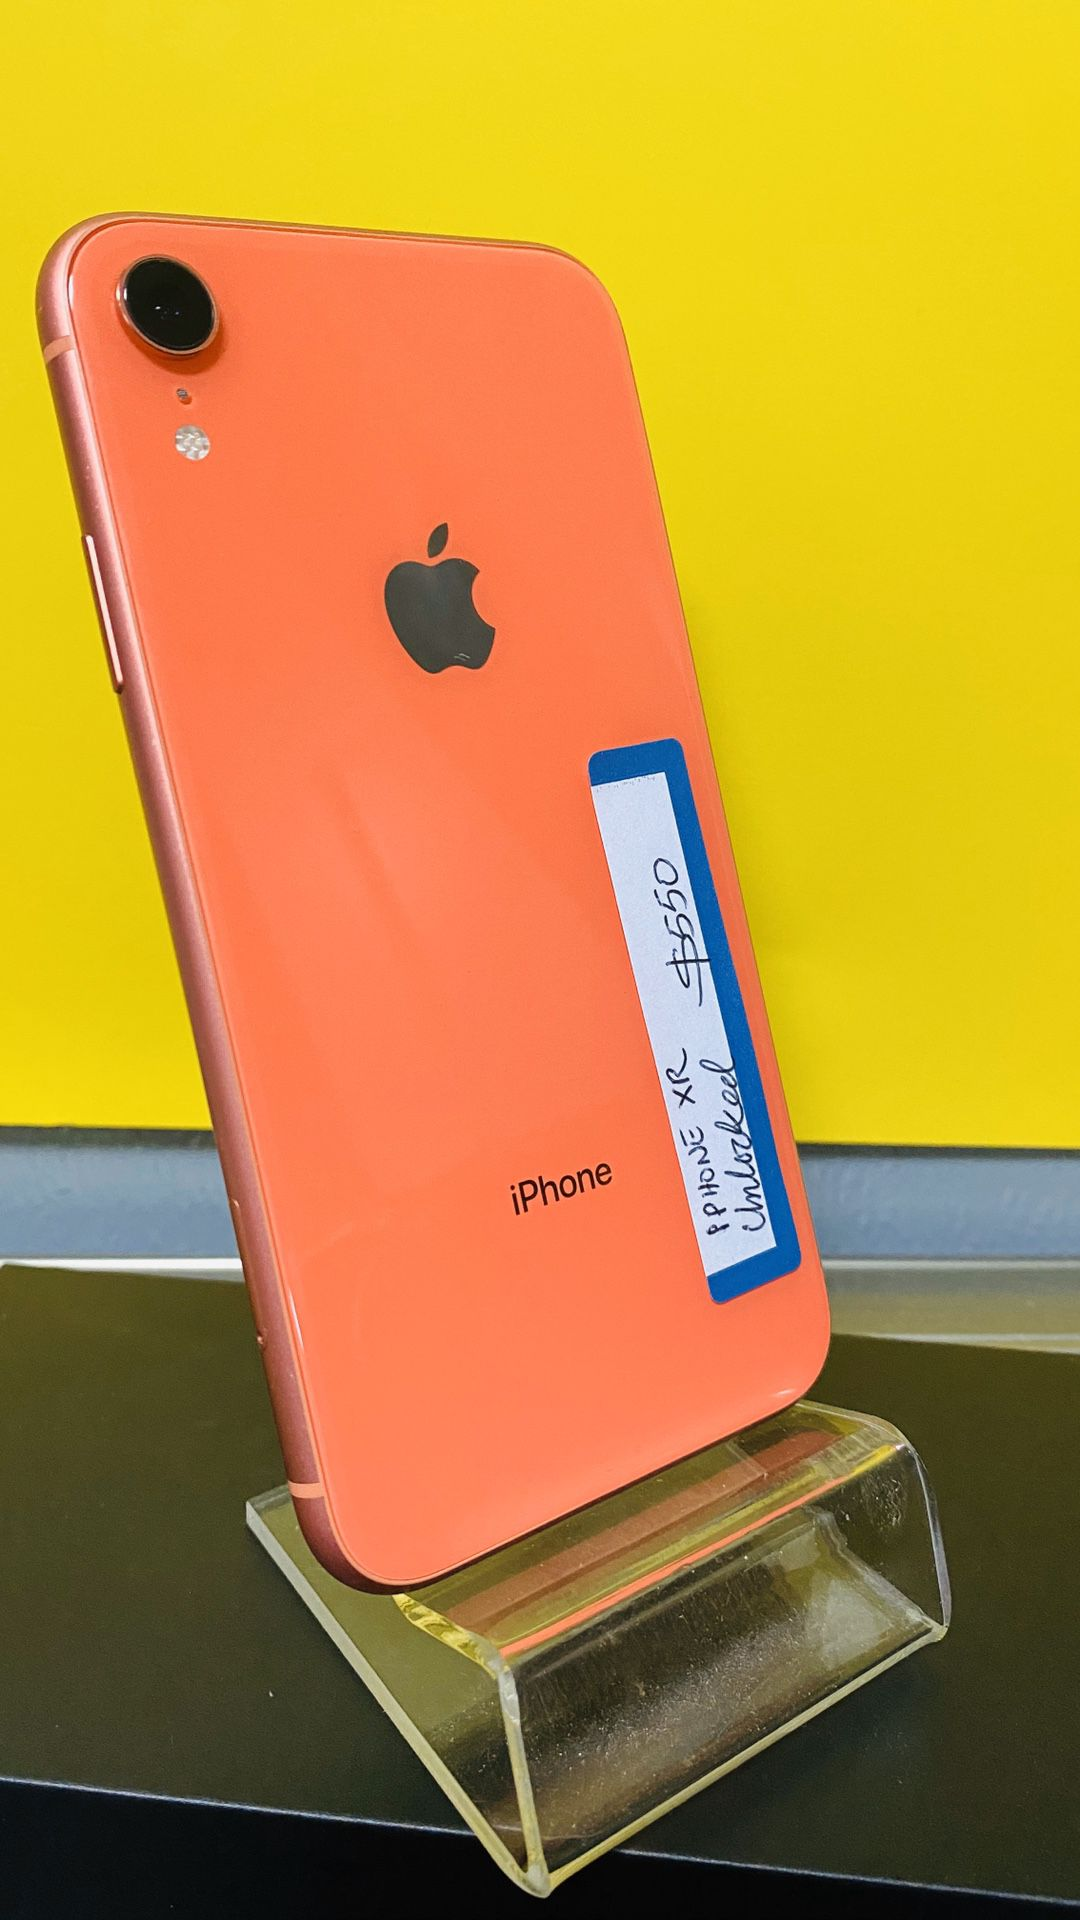 iPhone XR CORAL UNLOCKED (((Finance any phone for 54 down payment, no credit needed take home today StorF: The Cell Phone Shoppe Address: 2661 Midwa